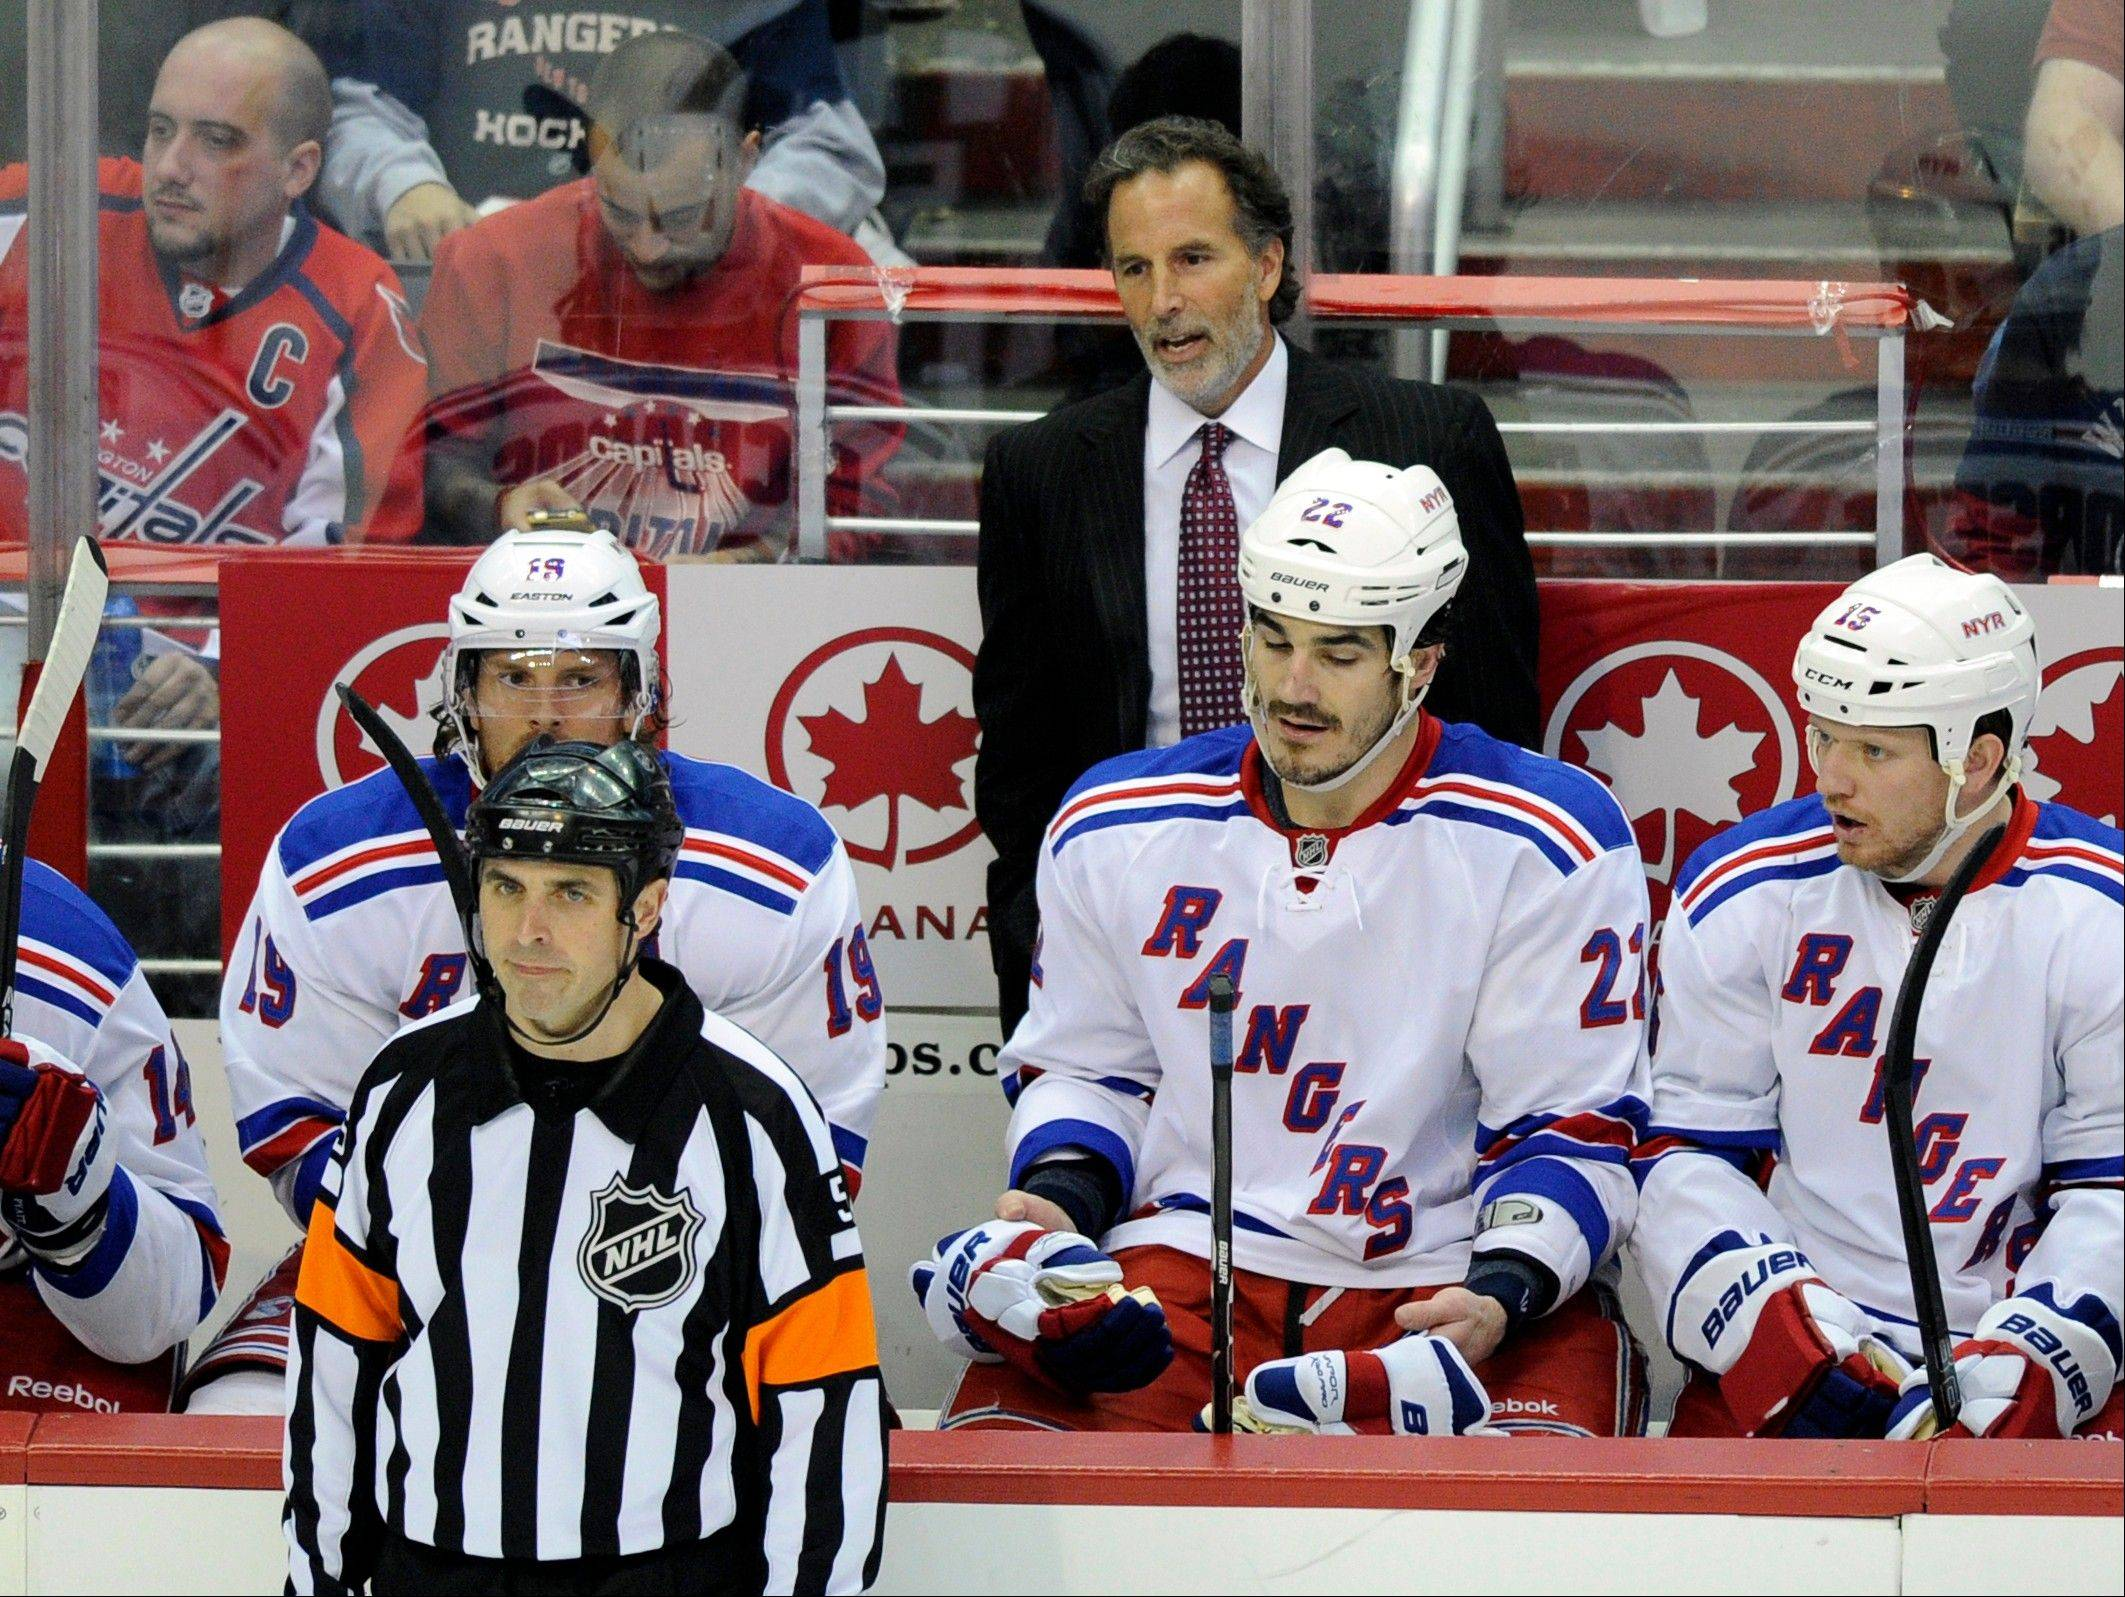 FILE - In this May 13, 2013, file photo, New York Rangers head coach John Tortorella, top rear, looks on from behind the bench during the second period of Game 7 first-round NHL Stanley Cup playoff hockey series against the Washington Capitals in Washington. The Vancouver Canucks hired Tortorella to be their new coach on Tuesday, June 25, 2013. Tortorella was recently fired by the Rangers after they lost to the Boston Bruins in the playoffs in five games.